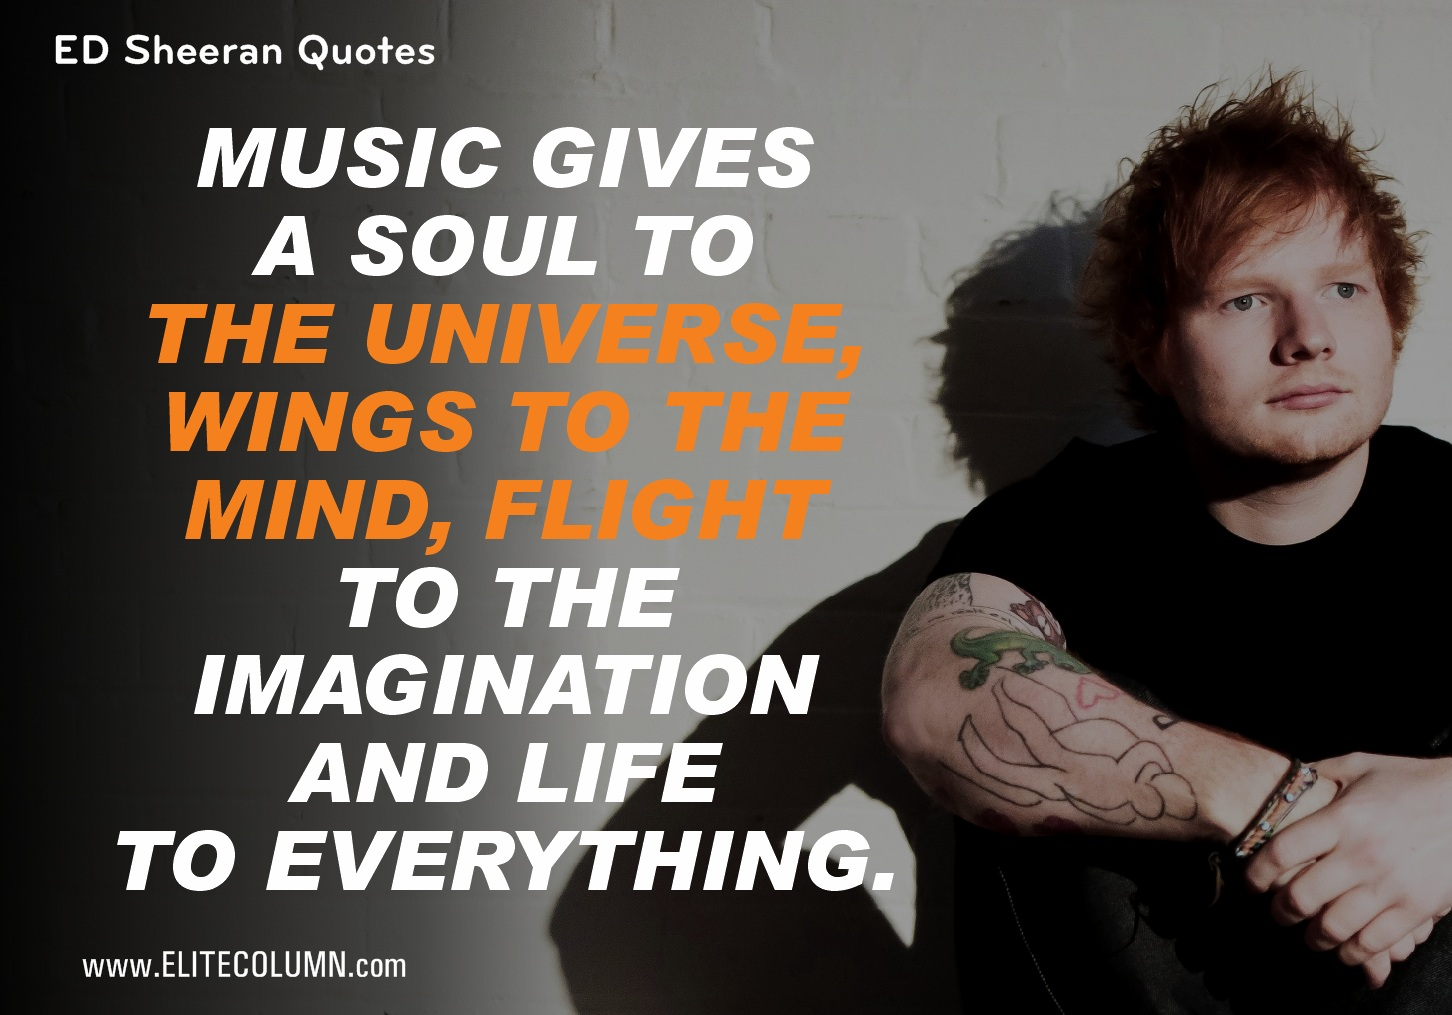 Ed Sheeran Quotes (10)